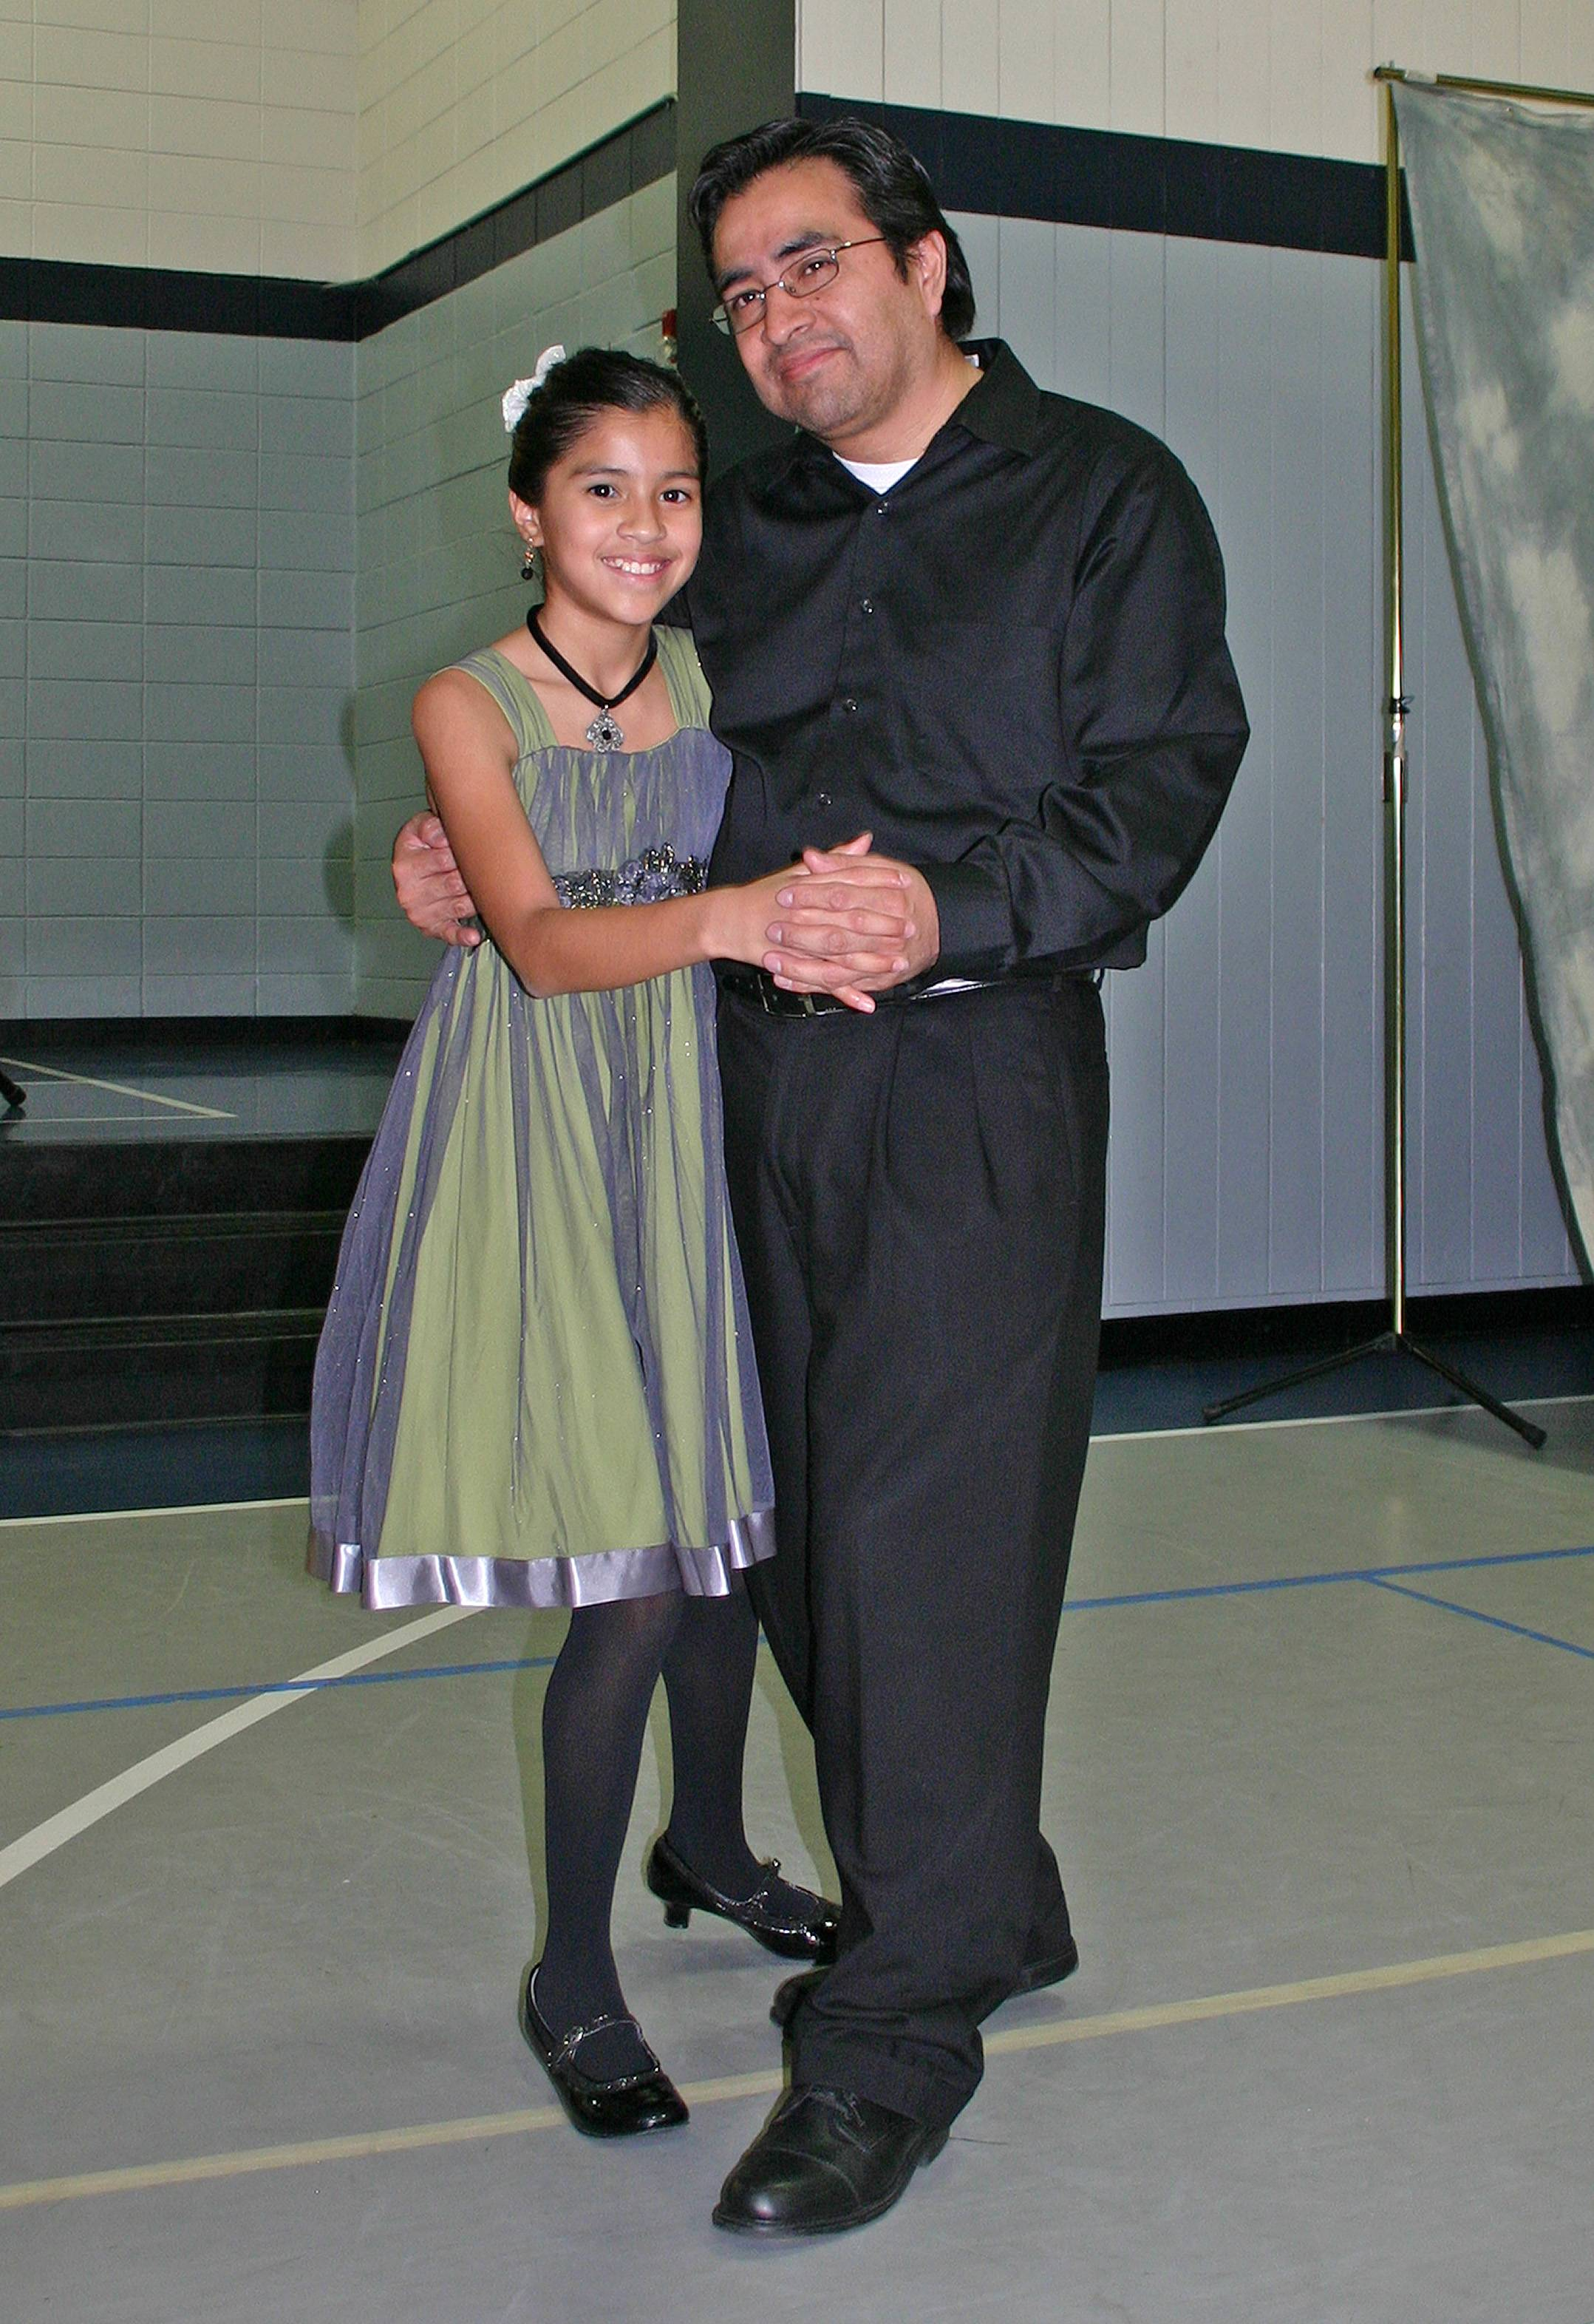 Zophia Perez, 10, shares a special dance with her father, Julio, at the 2013 Father Daughter Royal Ball on February 9.